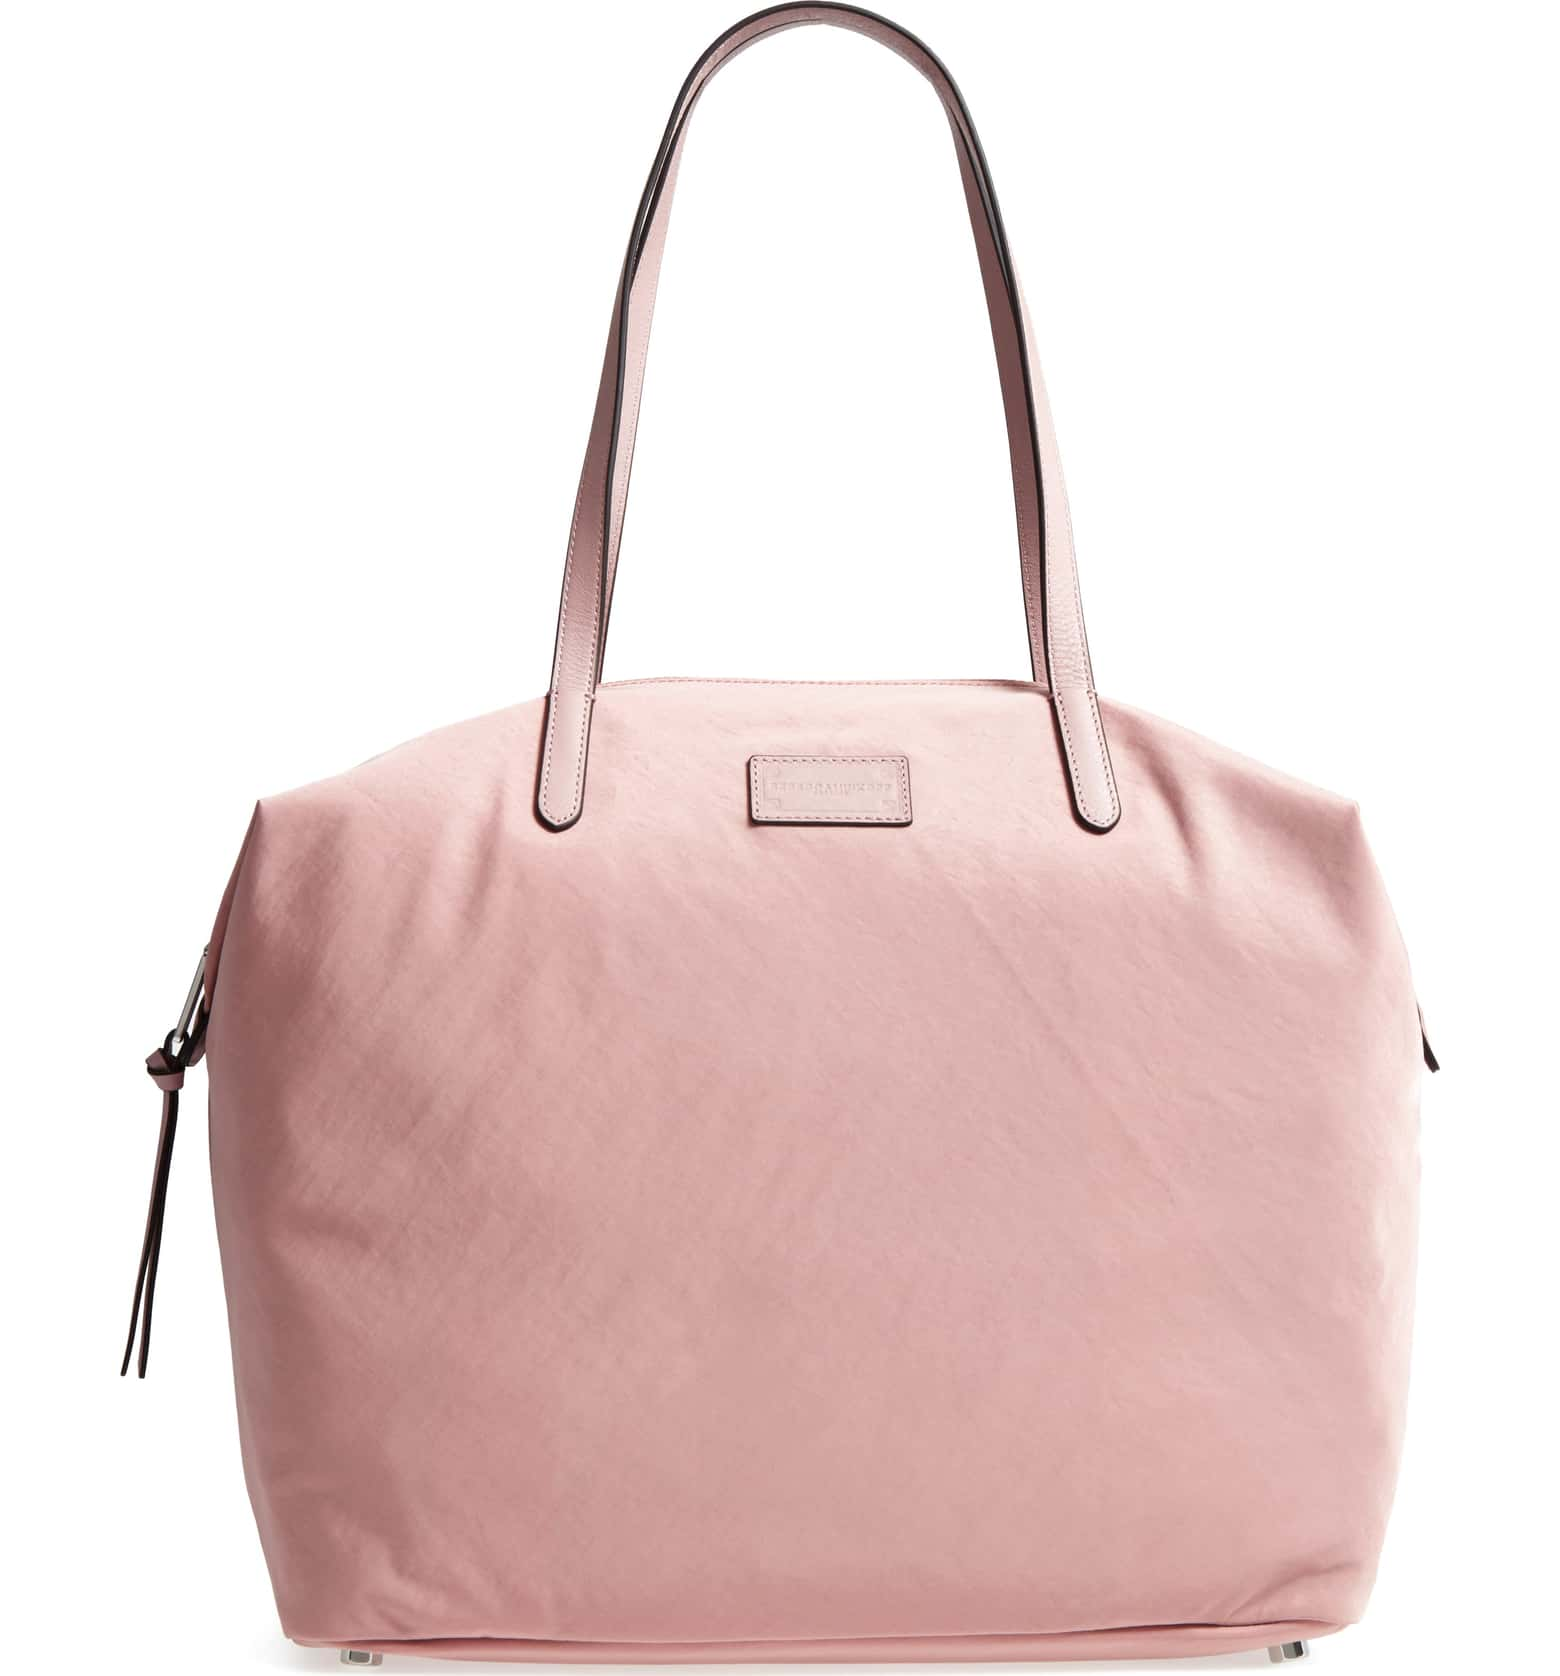 6. Tote/Purse - Rebecca Minkoff Washed Nylon Tote